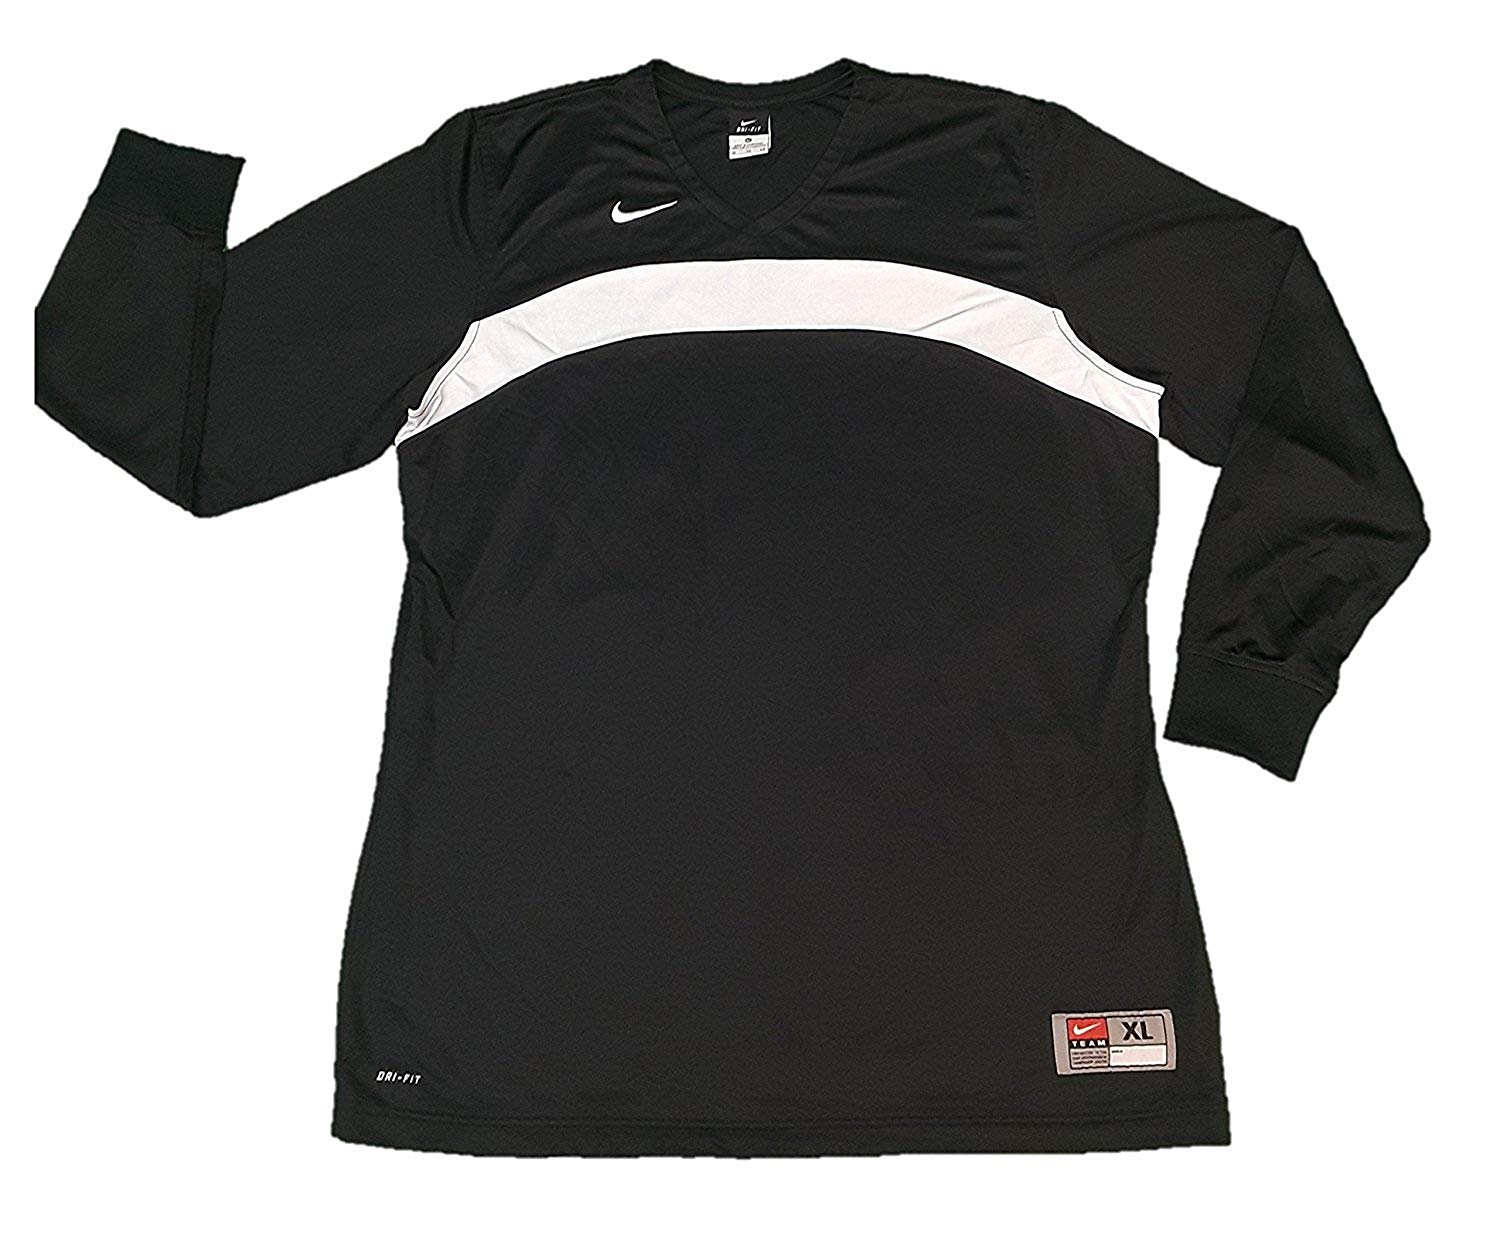 de56ad83bf9f Get Quotations · NIKE Womens Dri Fit Elite Defender Long Sleeve Shooting Jersey  Shirt